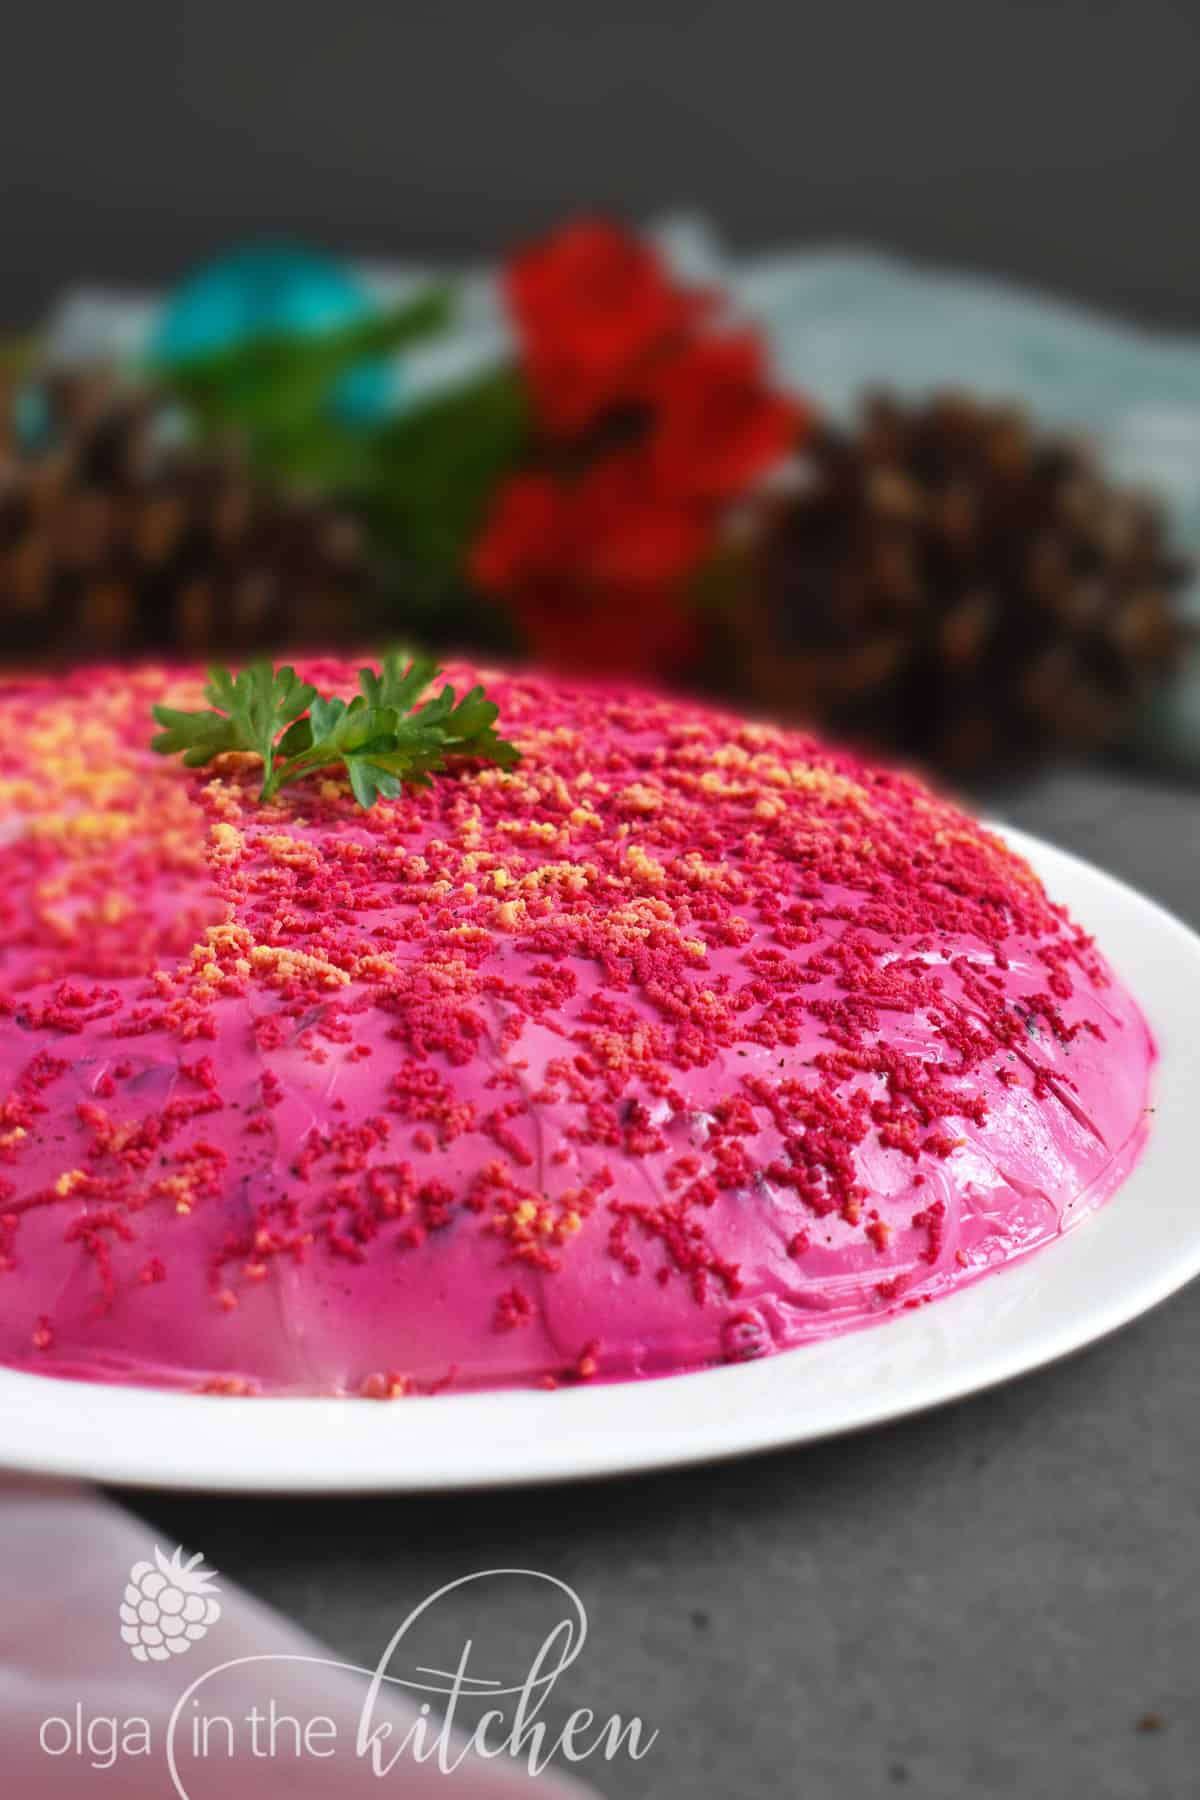 Shuba Salad (Layered Beet Salad with Herring): an easy and festive dish created from root vegetables; very popular among Ukrainian families. | olgainthekitchen.com